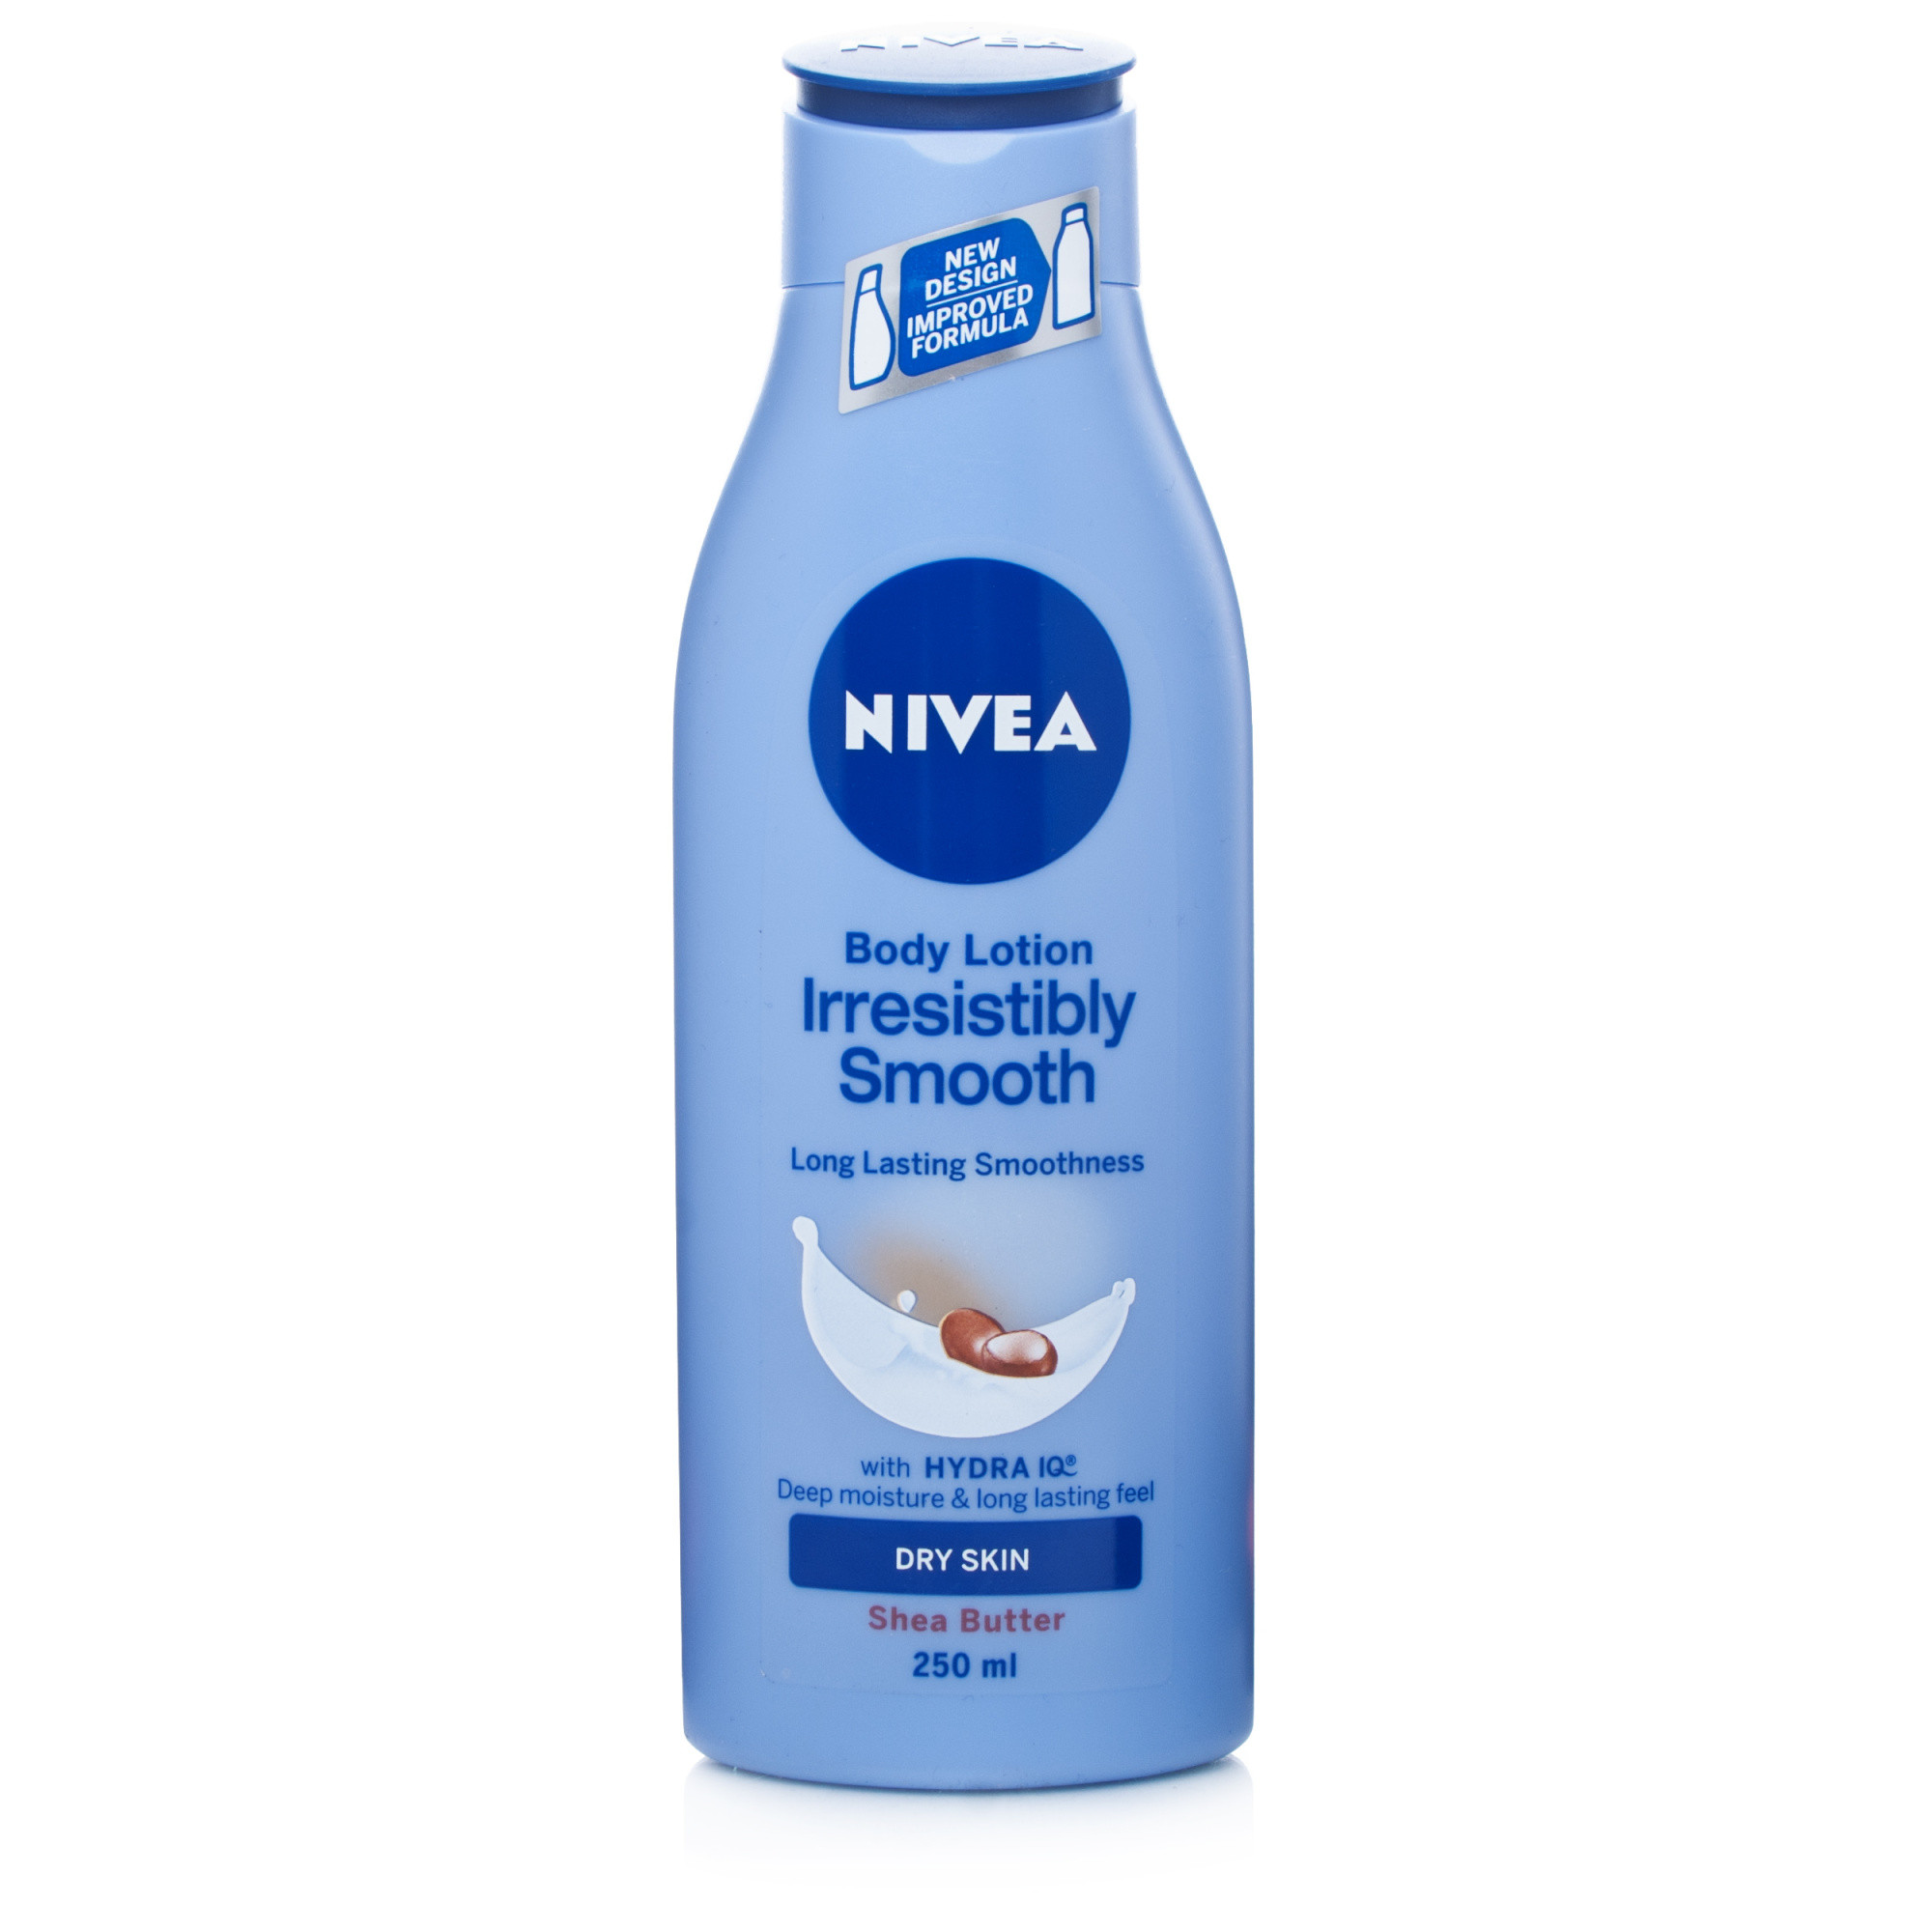 Nivea Irresistibly Smooth Body Lotion